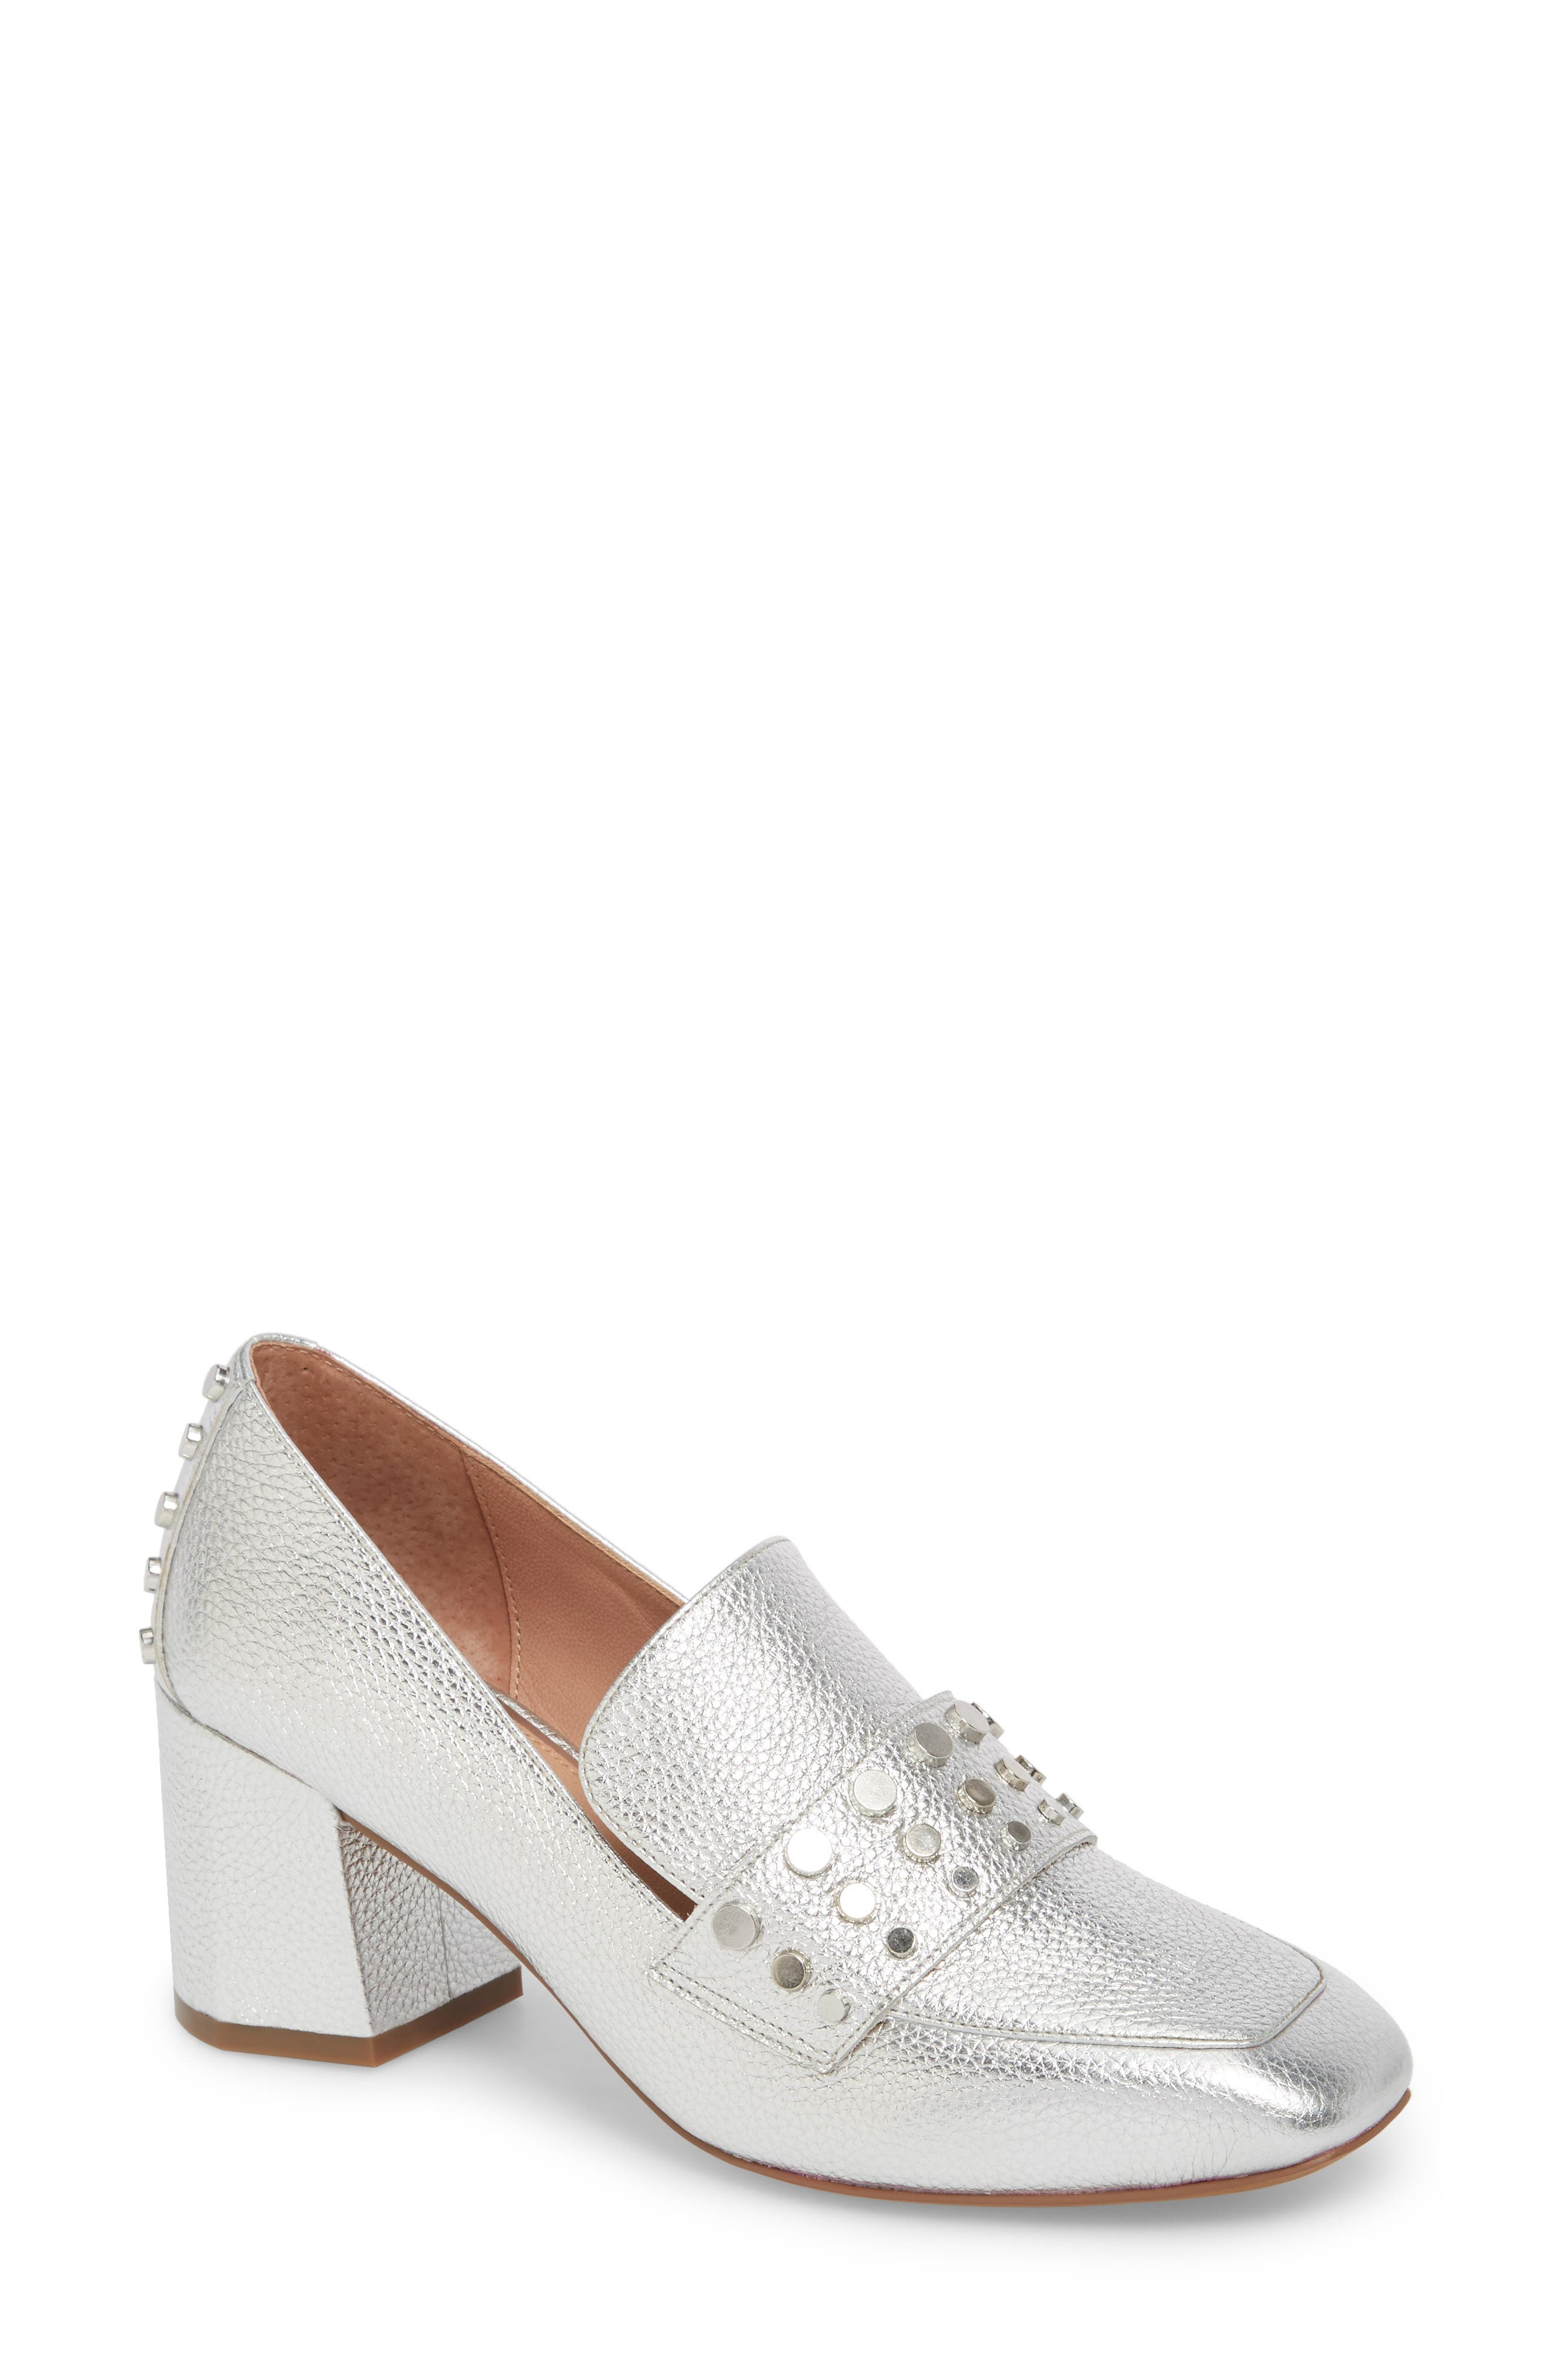 Luca Studded Pump,                         Main,                         color, Silver Leather